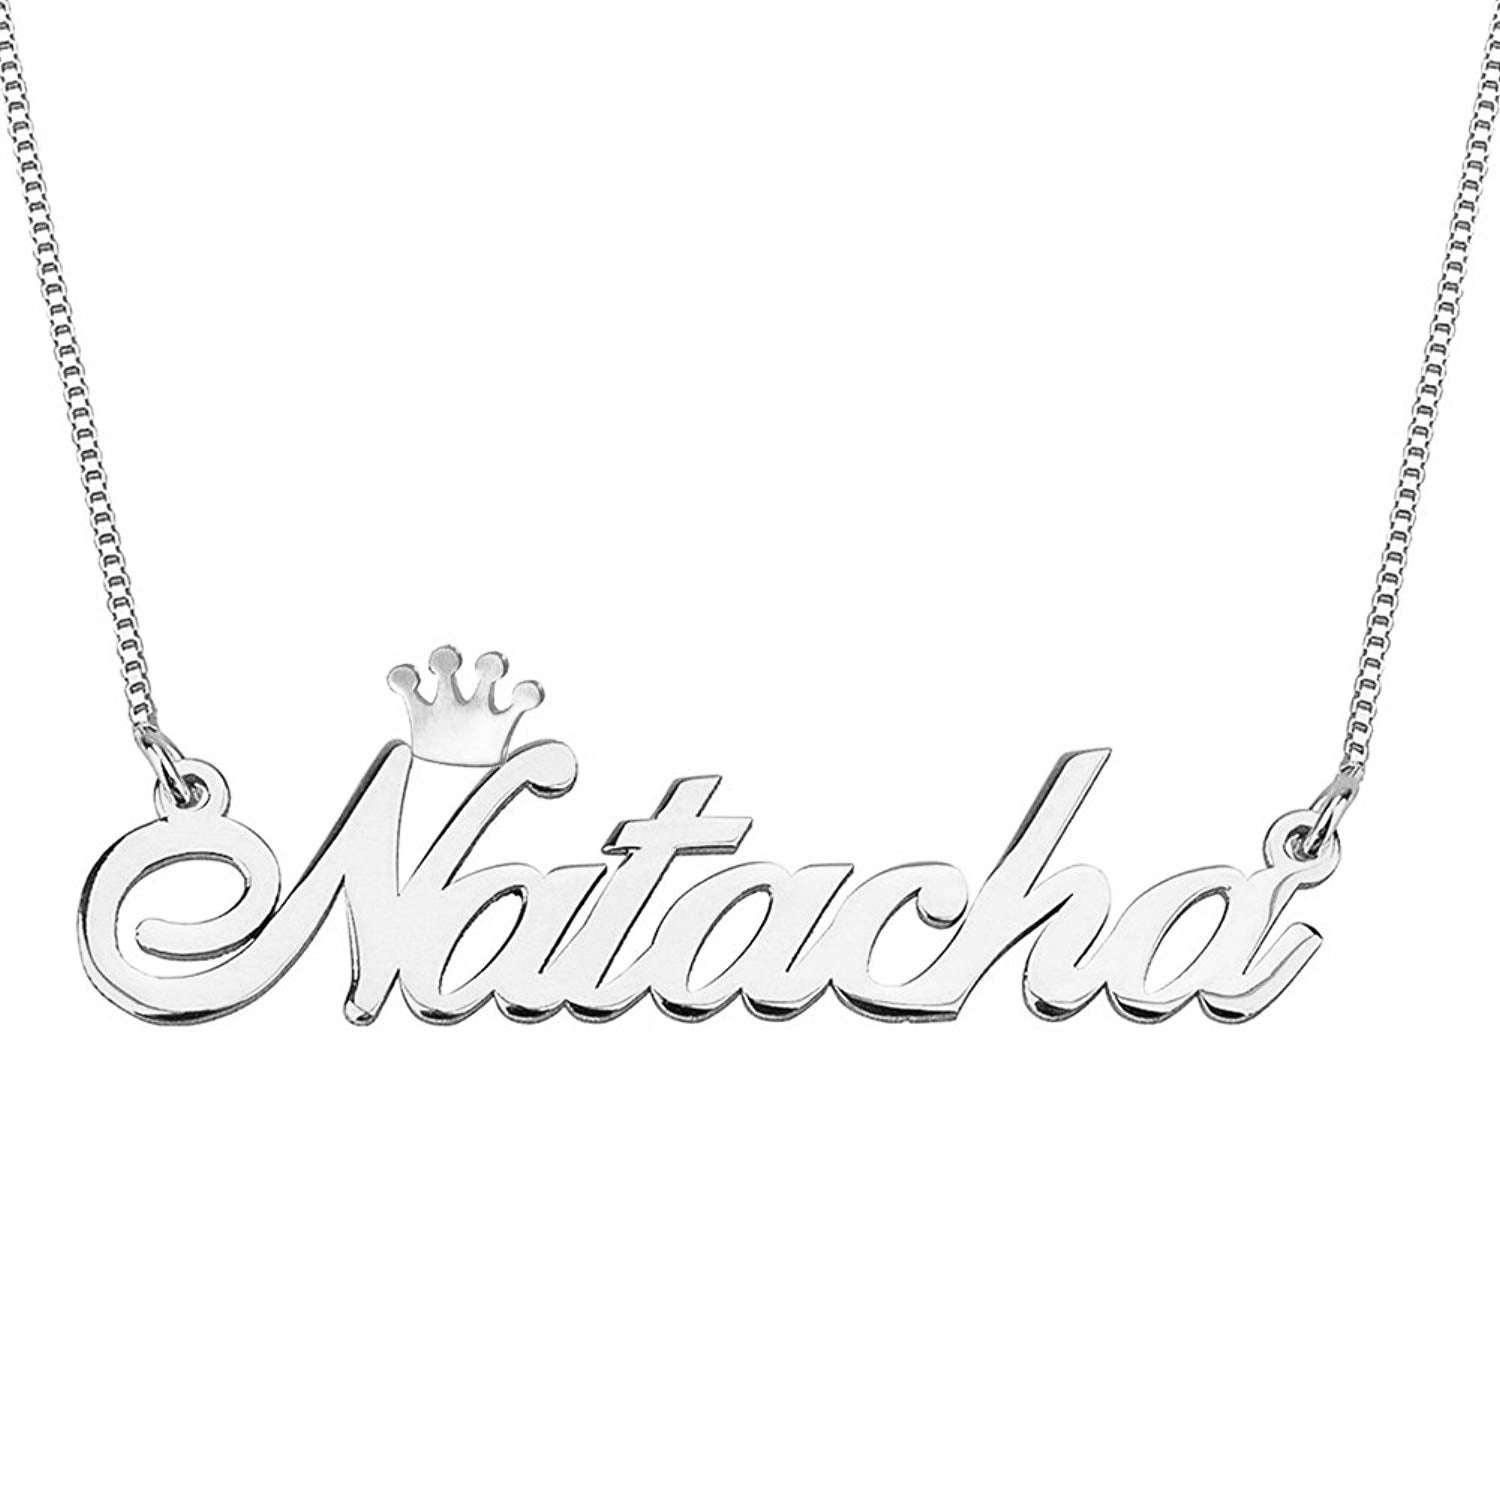 Name Necklace Personalized Jewelry 925 Sterling Silver Or Gold//Rose Plated 18k